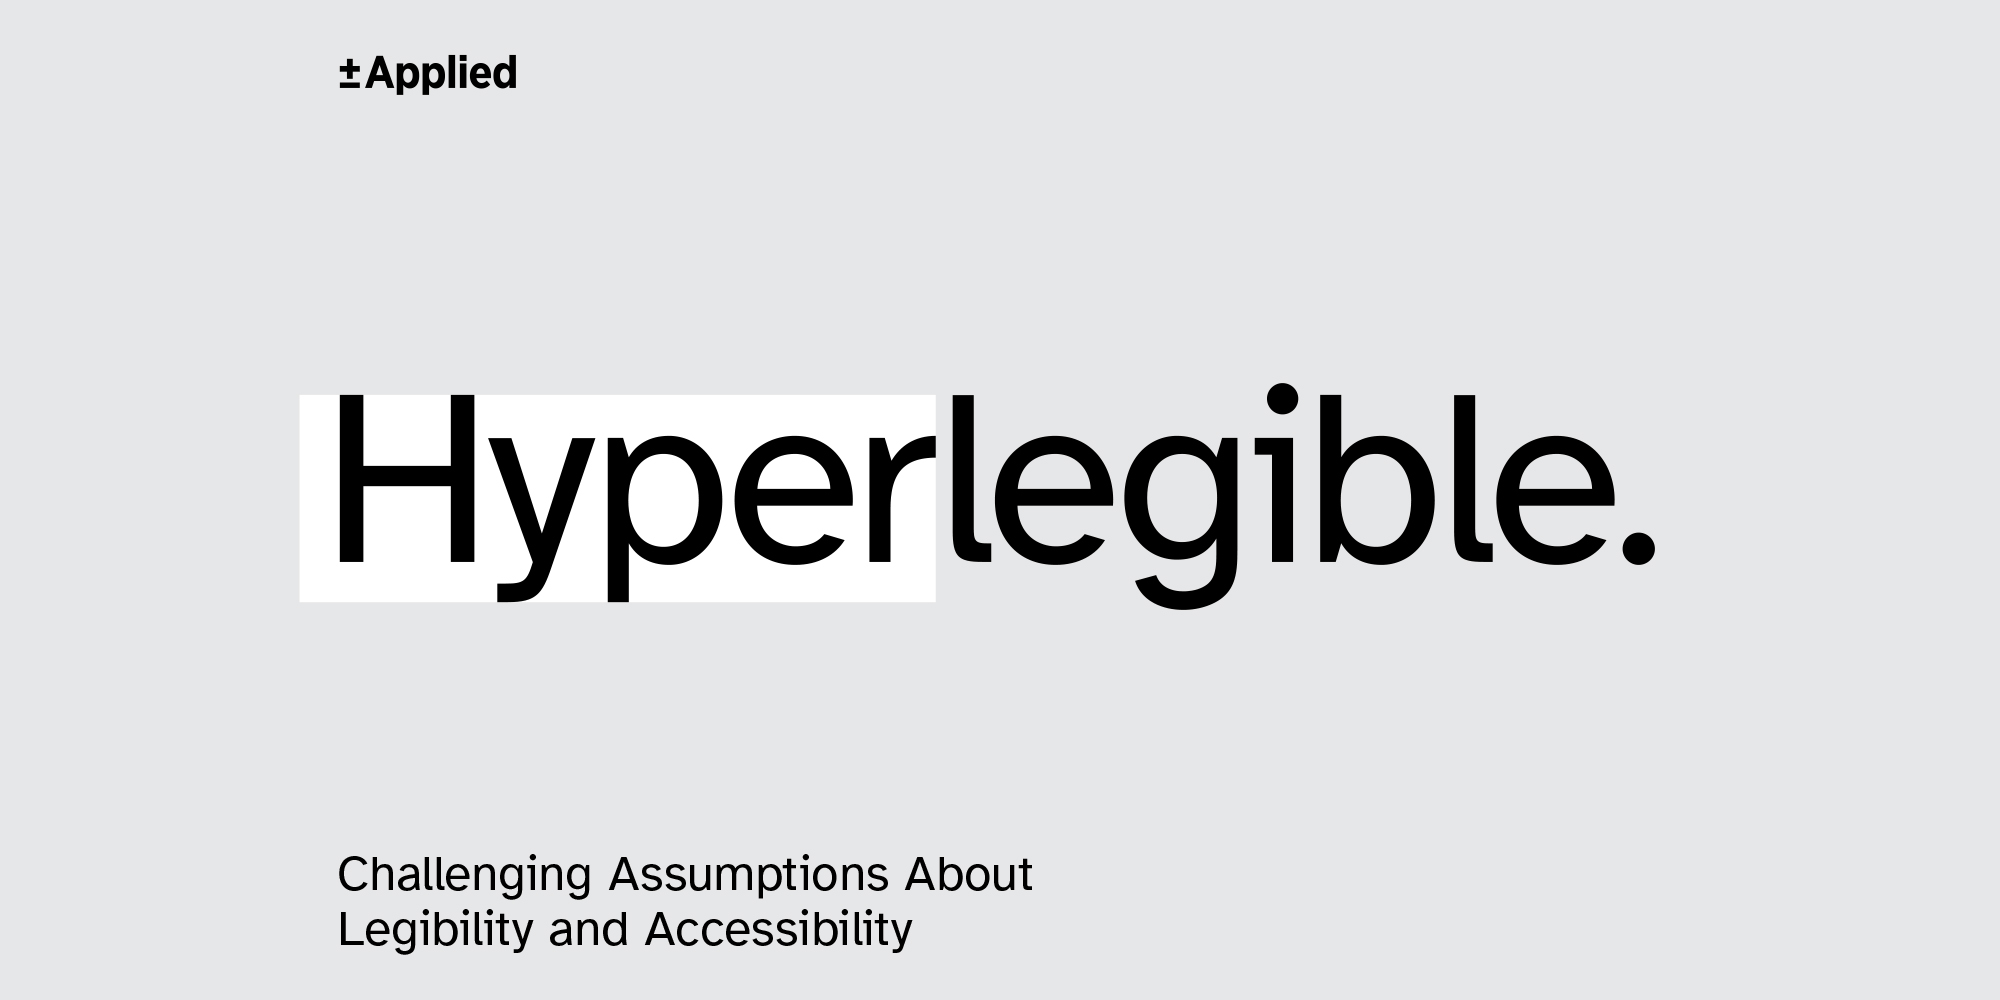 Atkinson Hyperlegible: Challenging assumptions about legibility and accessibility